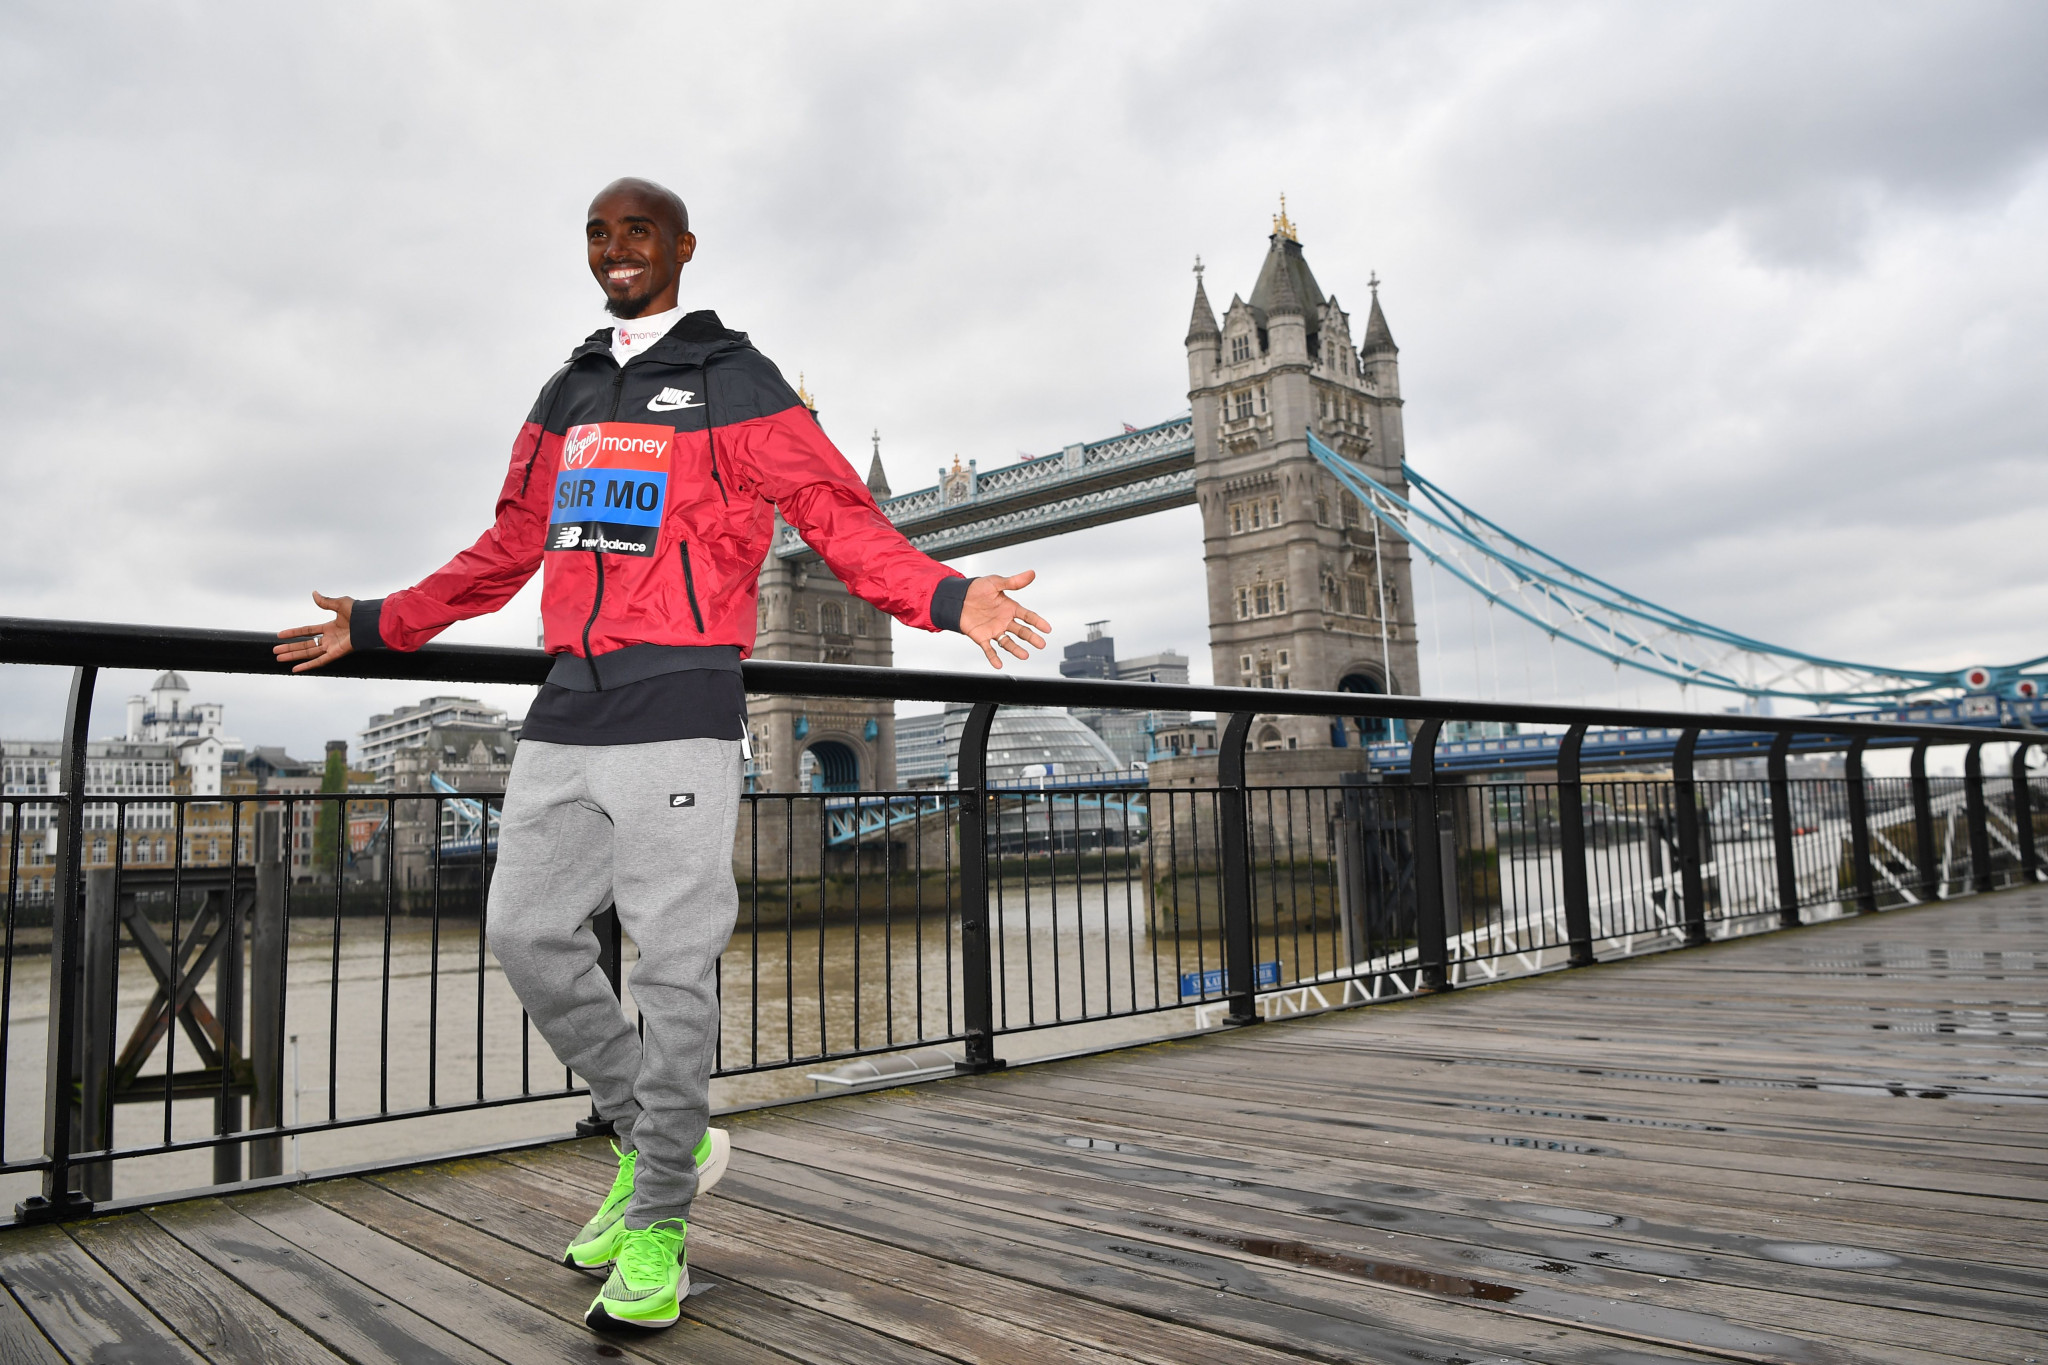 UK Athletics holds talks with Farah amid row with Gebrselassie